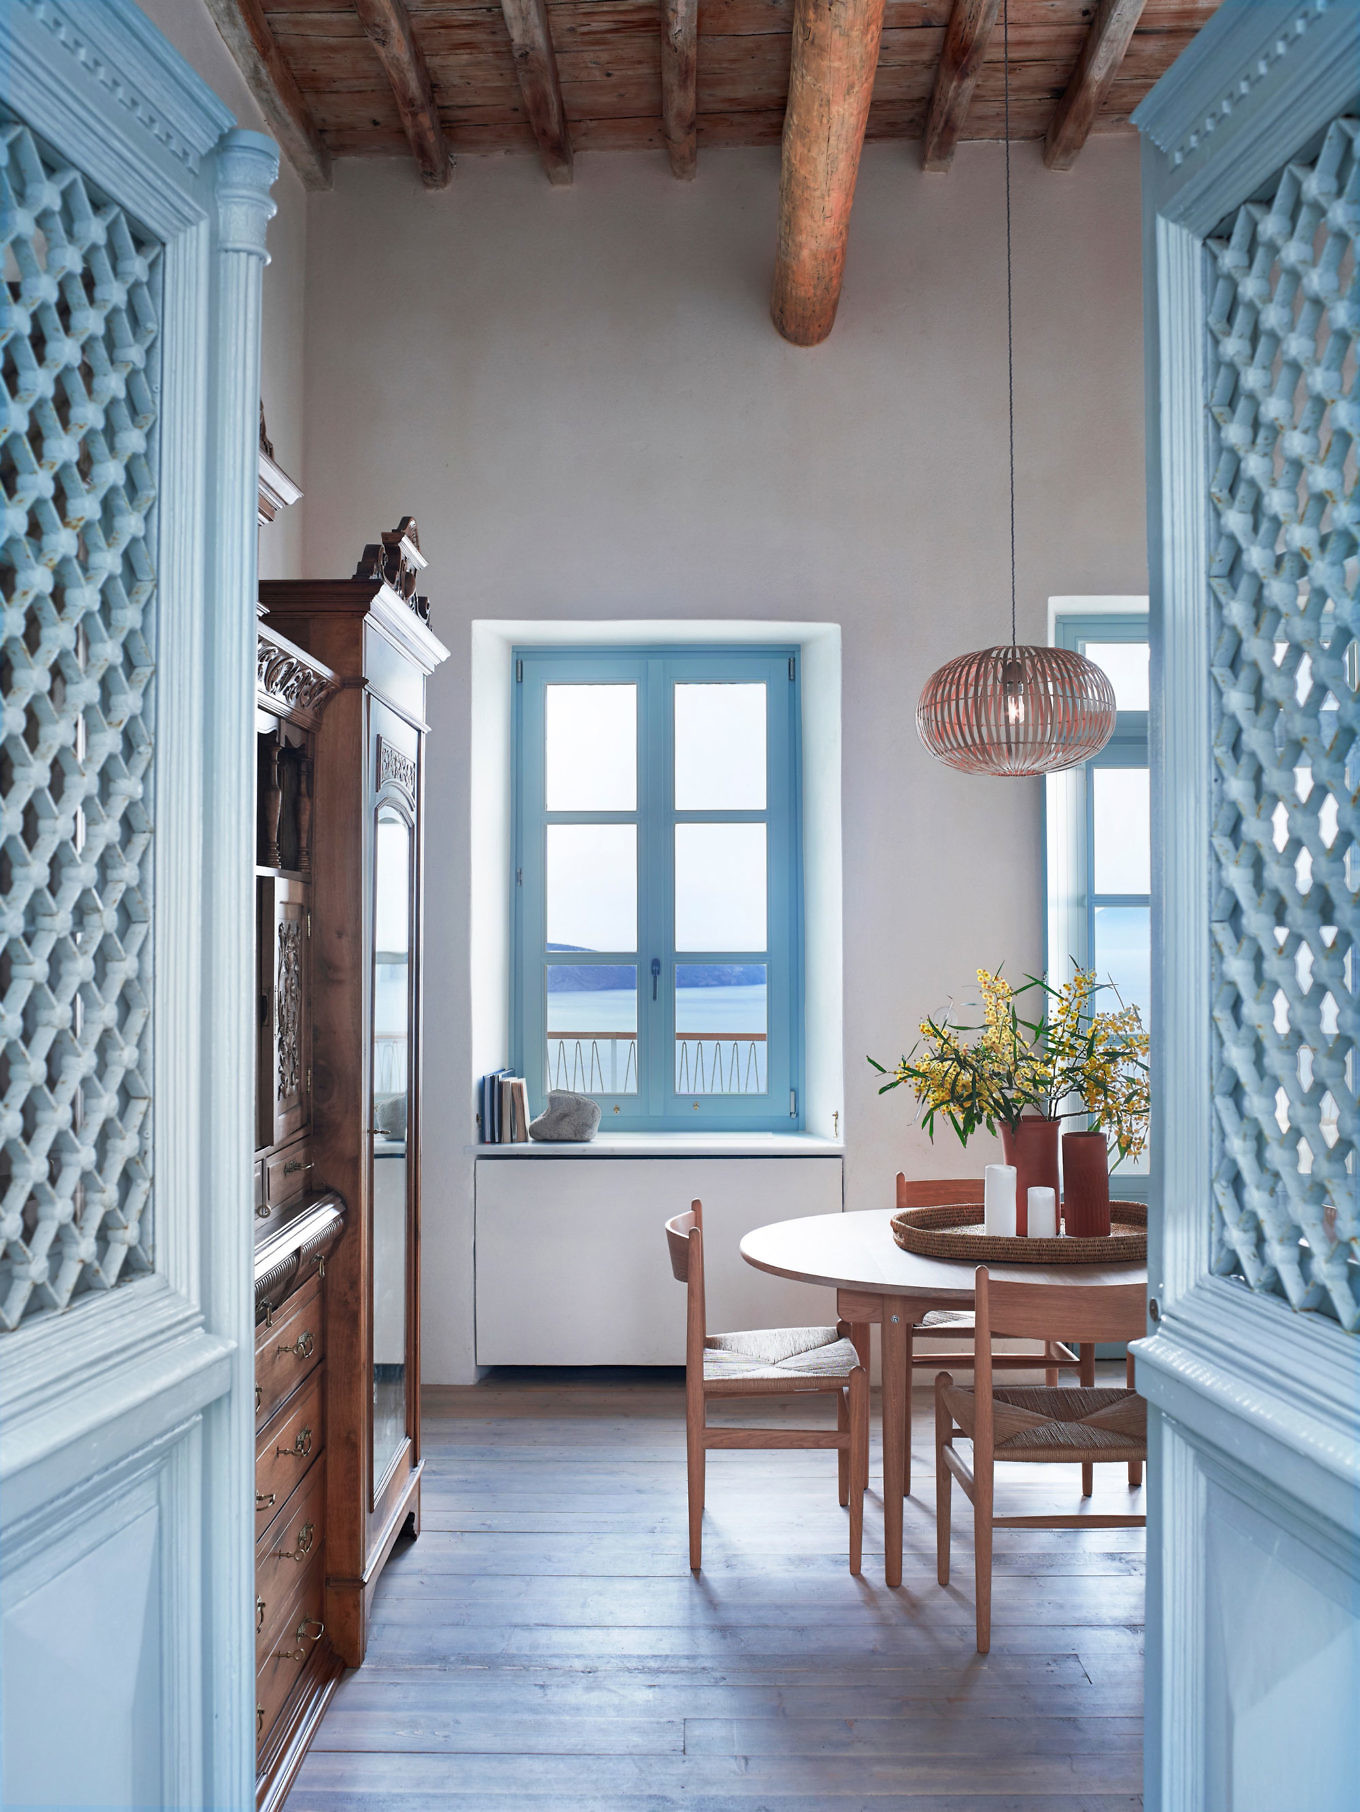 Be Amazed By This Summer House Retreat In Greece! 5 summer house retreat Be Amazed By This Summer House Retreat In Greece! Be Amazed By This Summer House Retreat In Greece 5